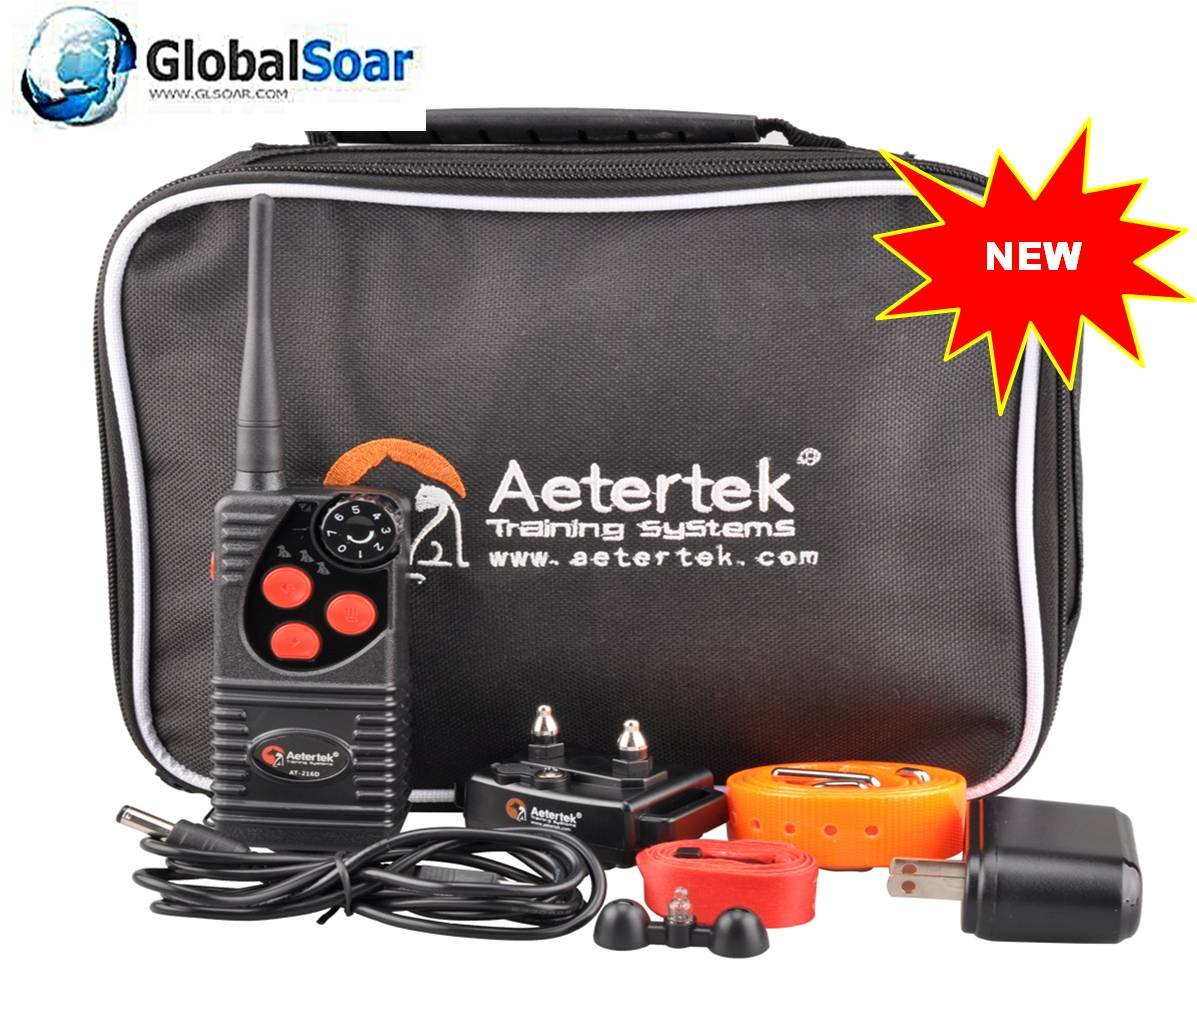 Aetertek 216D-550S-1 600 Yard 1 Dog Training Anti Bark & Waterproof Collar by Aetertek